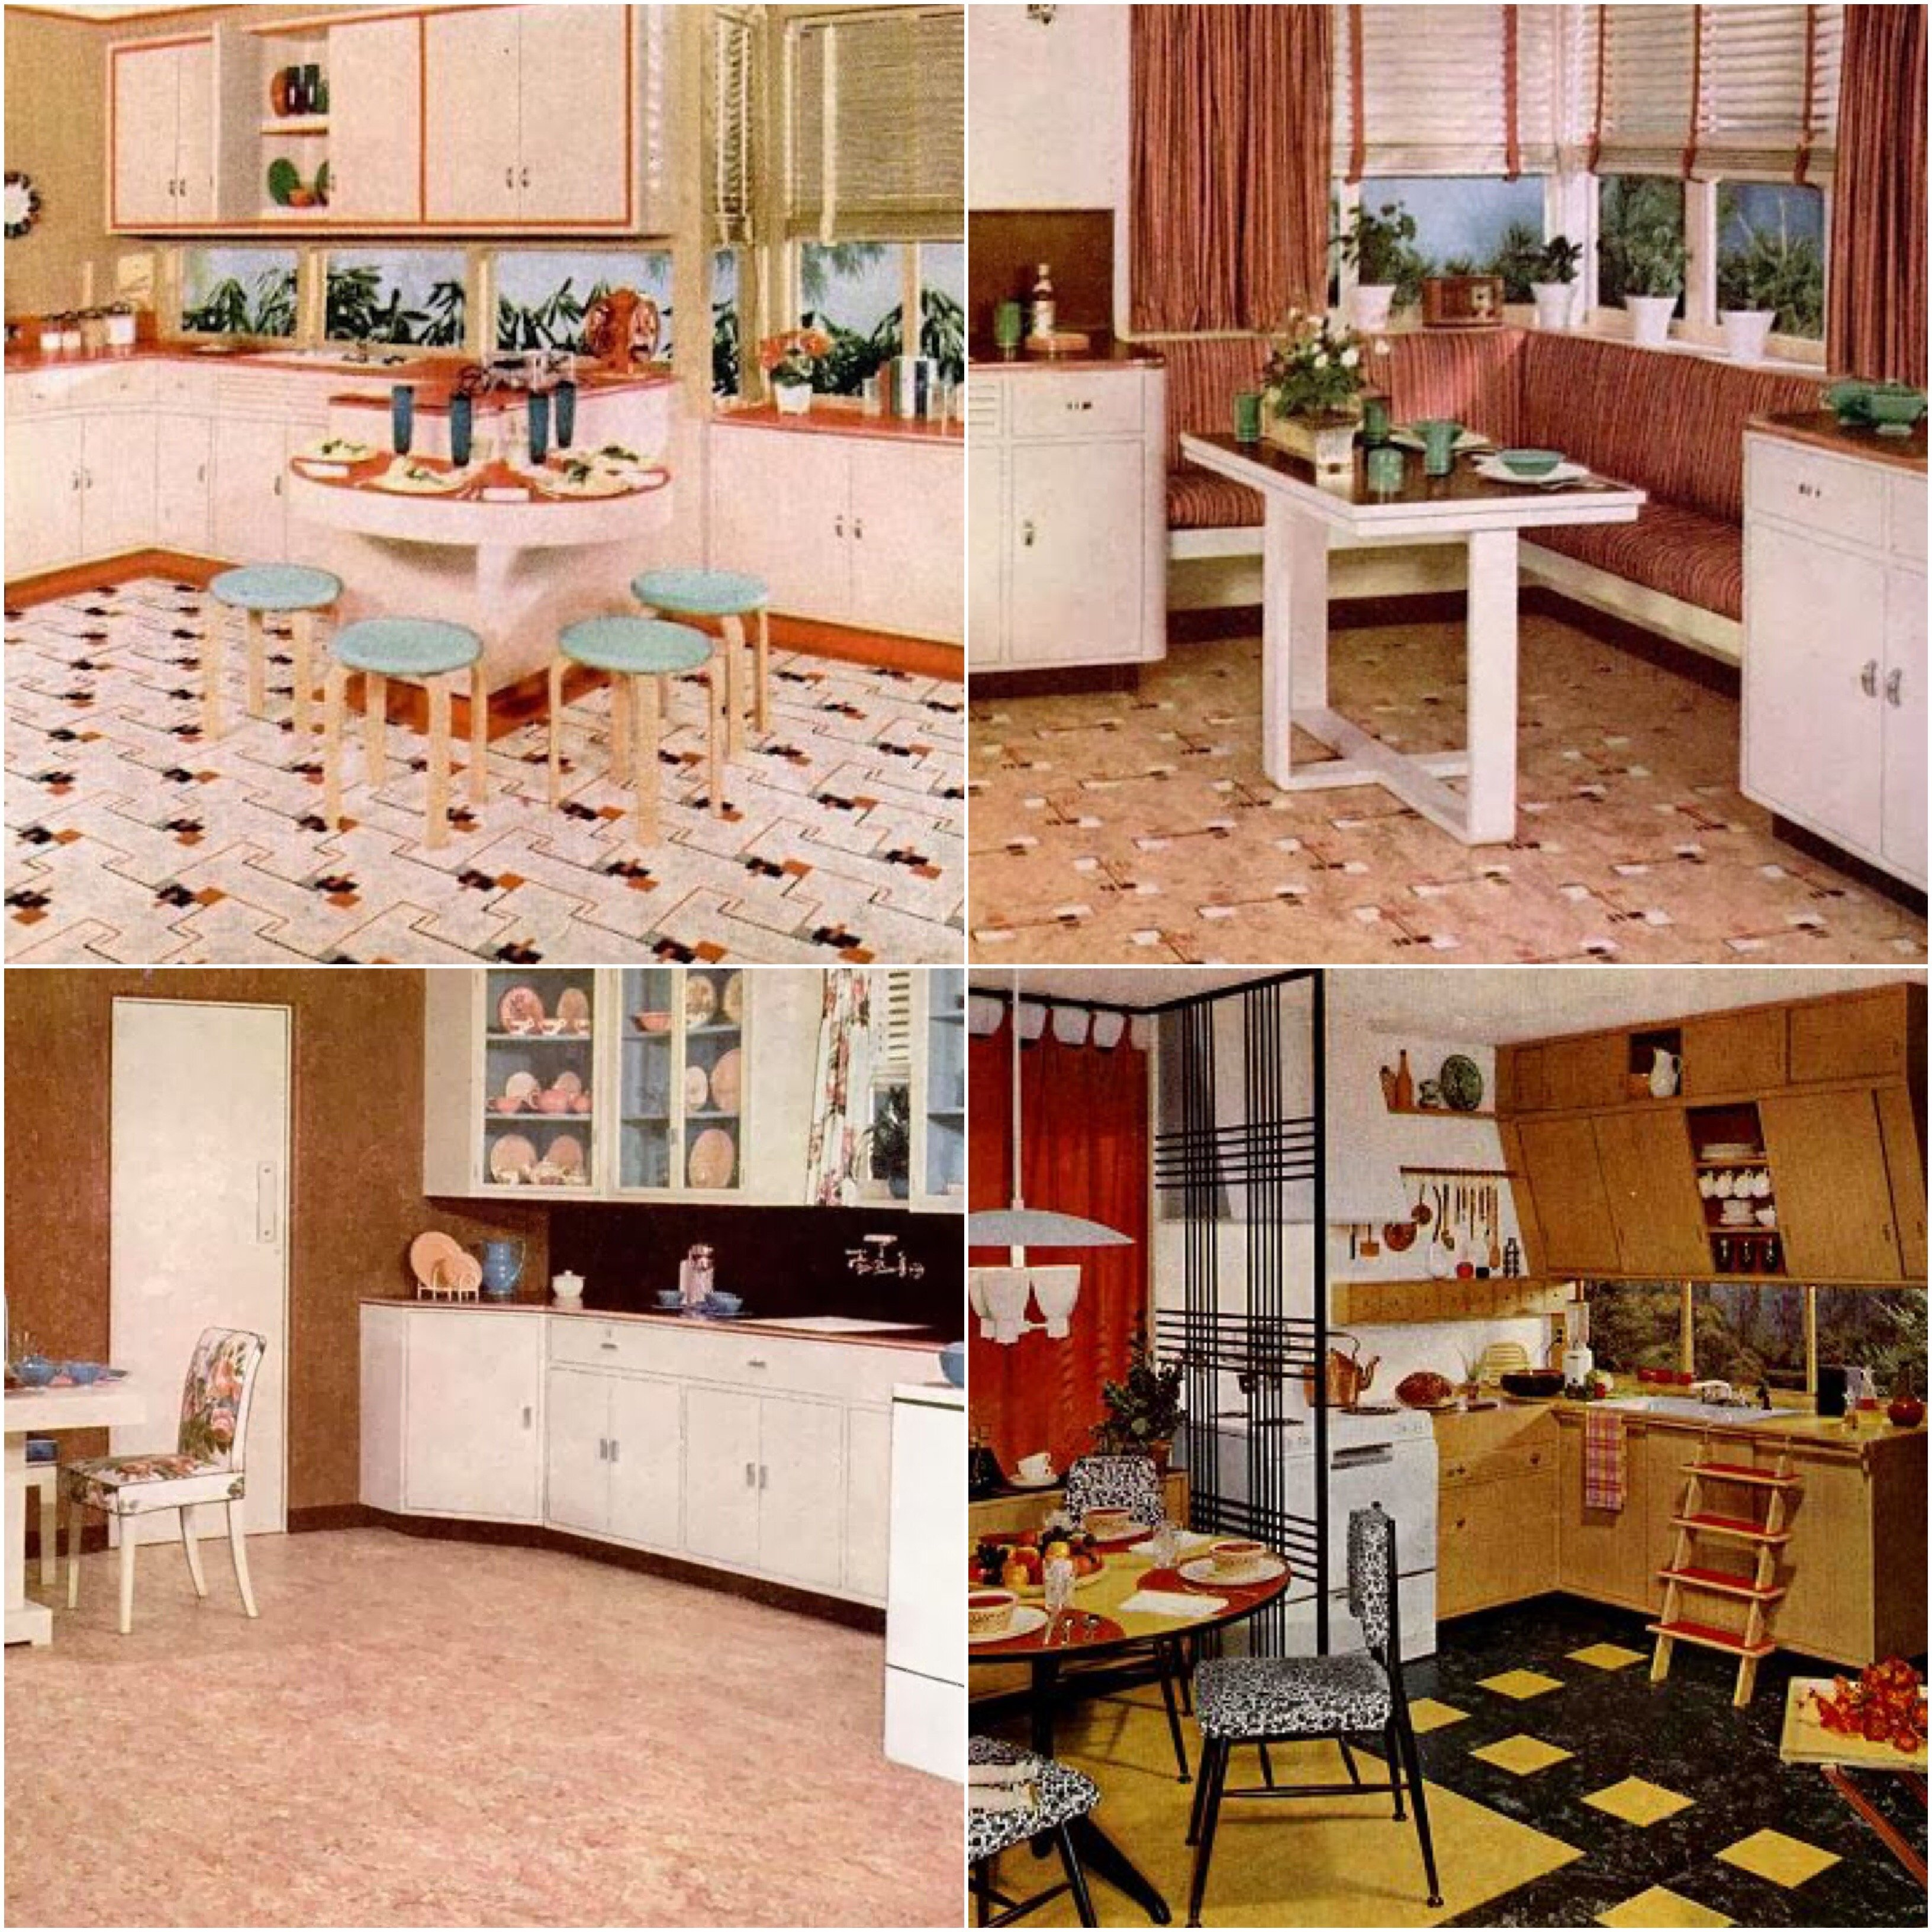 Linoleum was considered a utilitarian flooring product since its introduction but was recycled by manufacturers in the 50s to be made available in bright